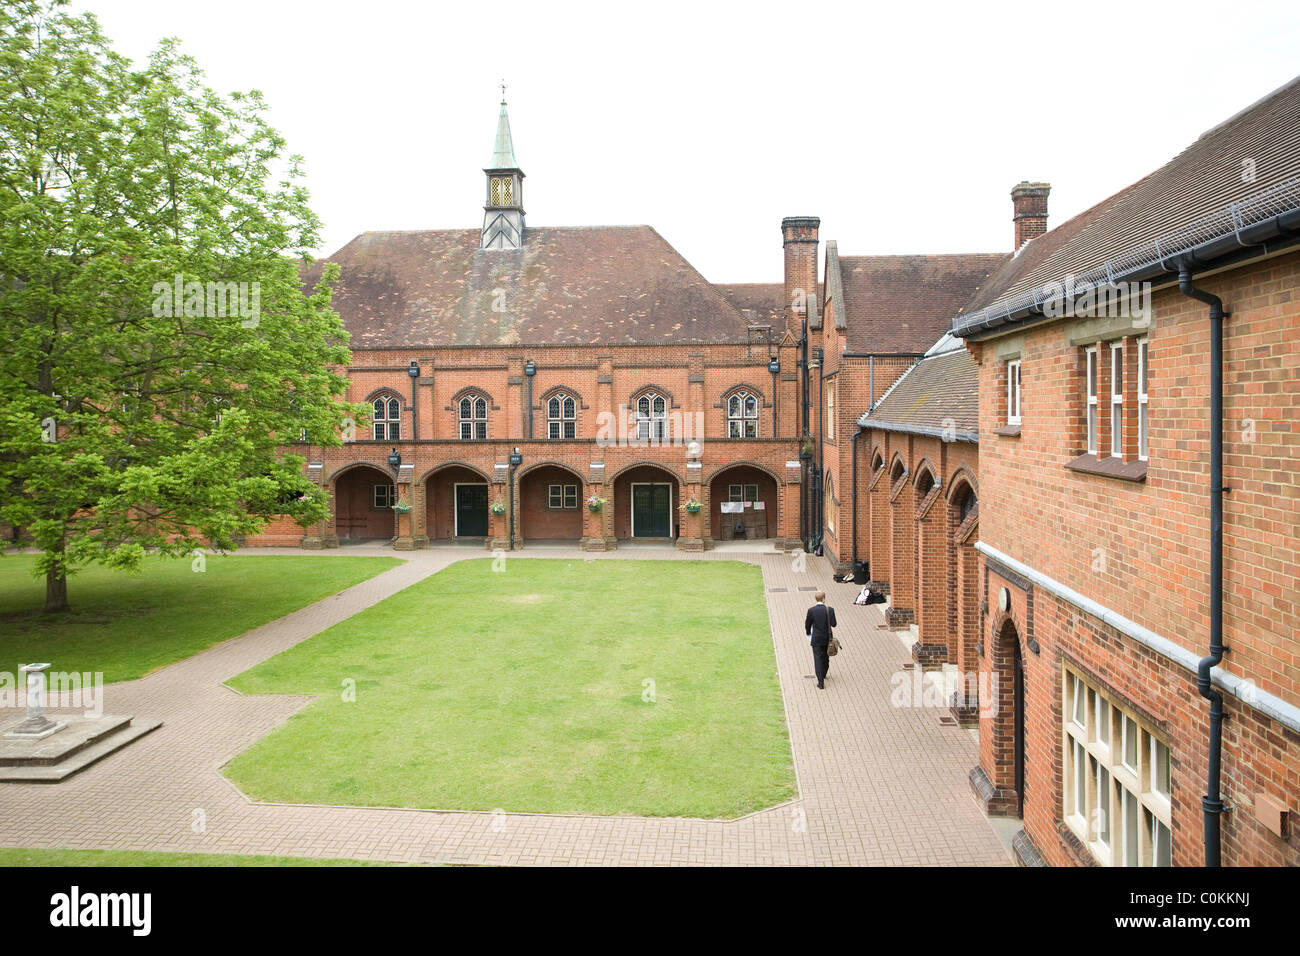 The quadrangle at Maidstone Grammar school in Maidstone, Kent, U.K. - Stock Image